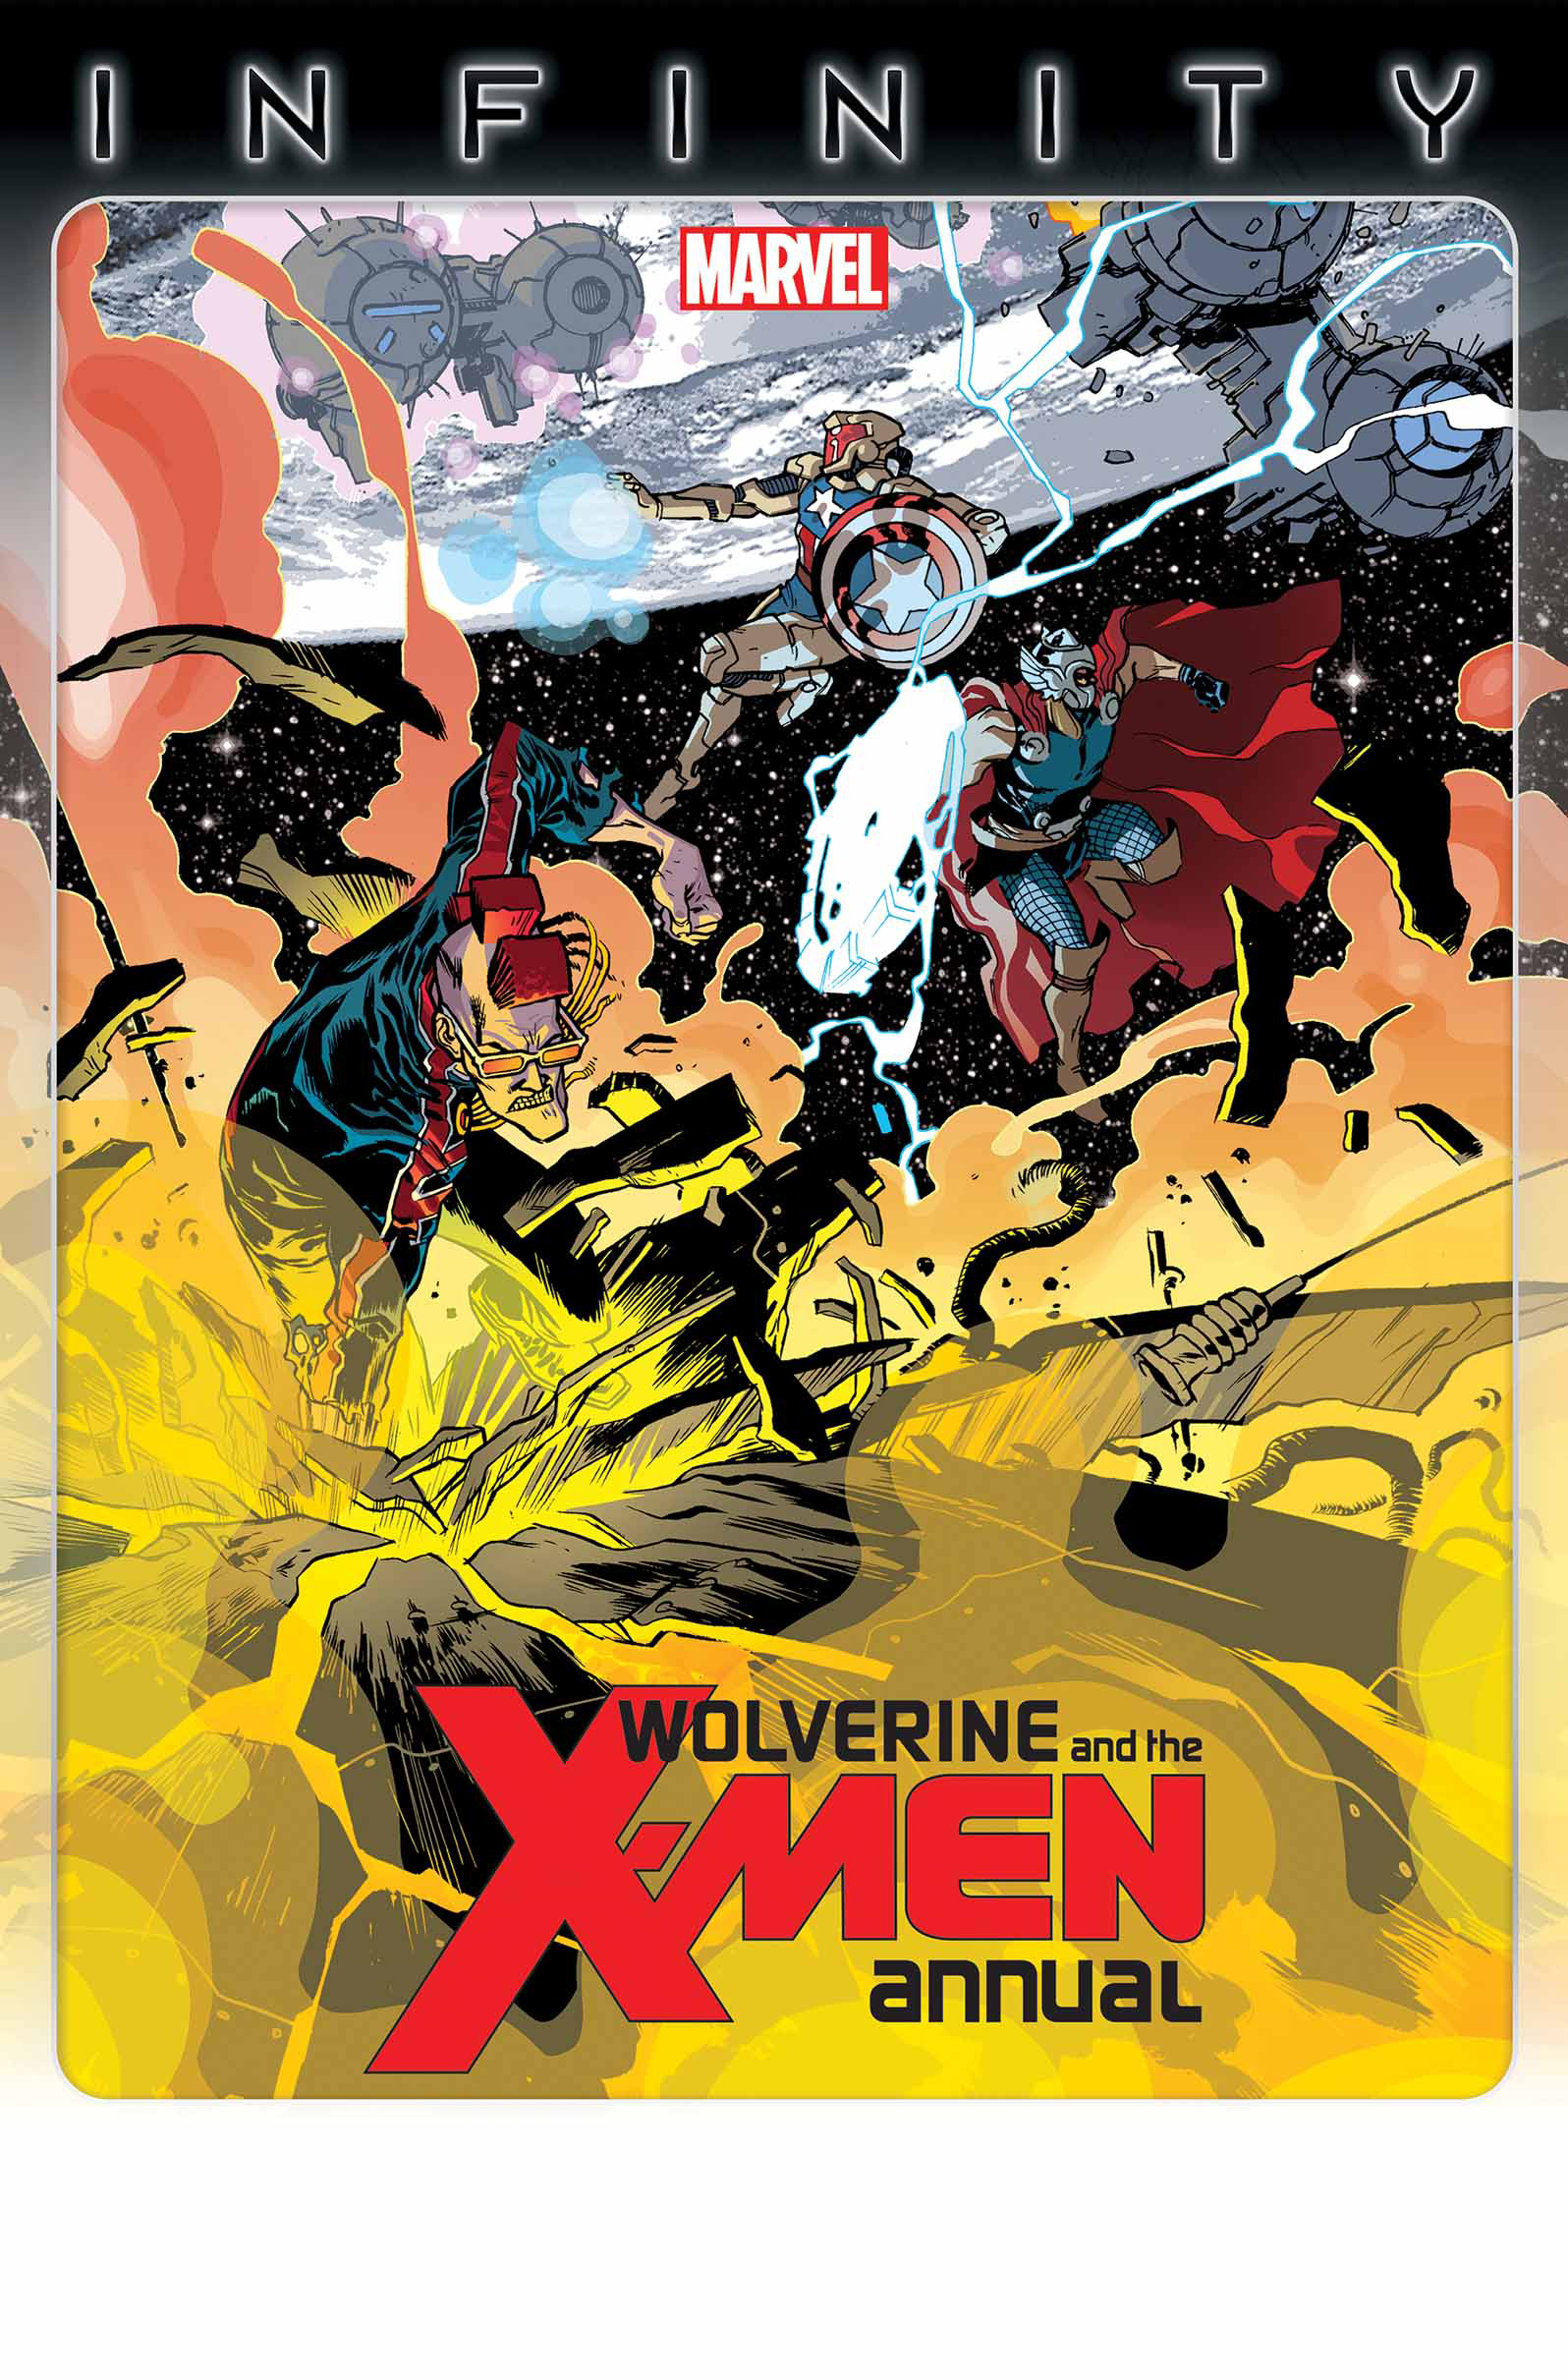 WOLVERINE AND X-MEN ANNUAL #1 INF